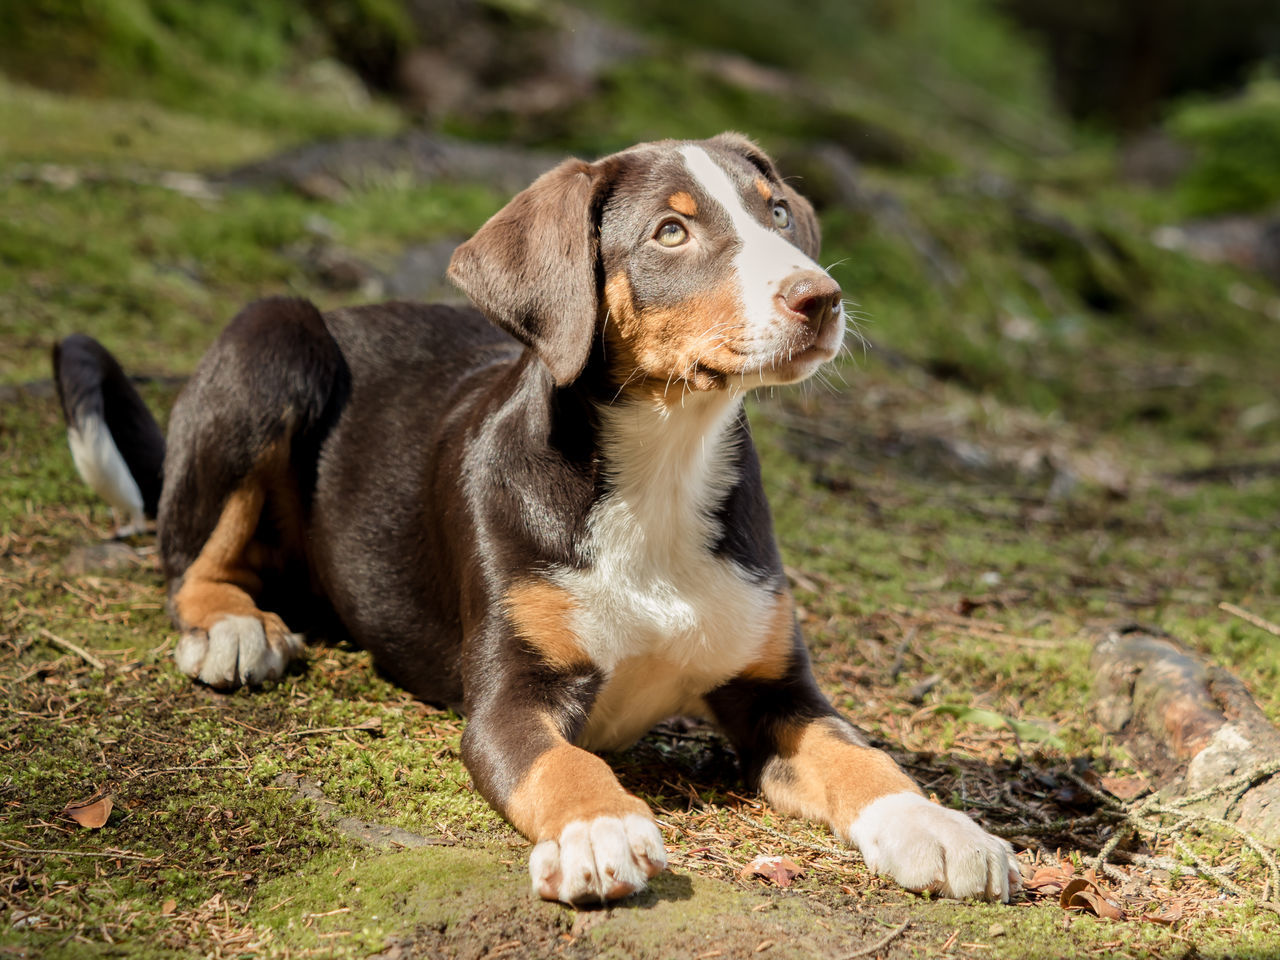 Appenzeller tricolor puppy Adorable Dog Animal Themes Appenzeller Appenzellermountaindog Appenzellersennenhund Breed Breeding Brown Cute Dog  Cute Pets Day Dog Dog Food Domestic Animals Friendly Mammal No People Obedience One Animal Outdoors Pets Puppy Puppy Dog Face Tricolor